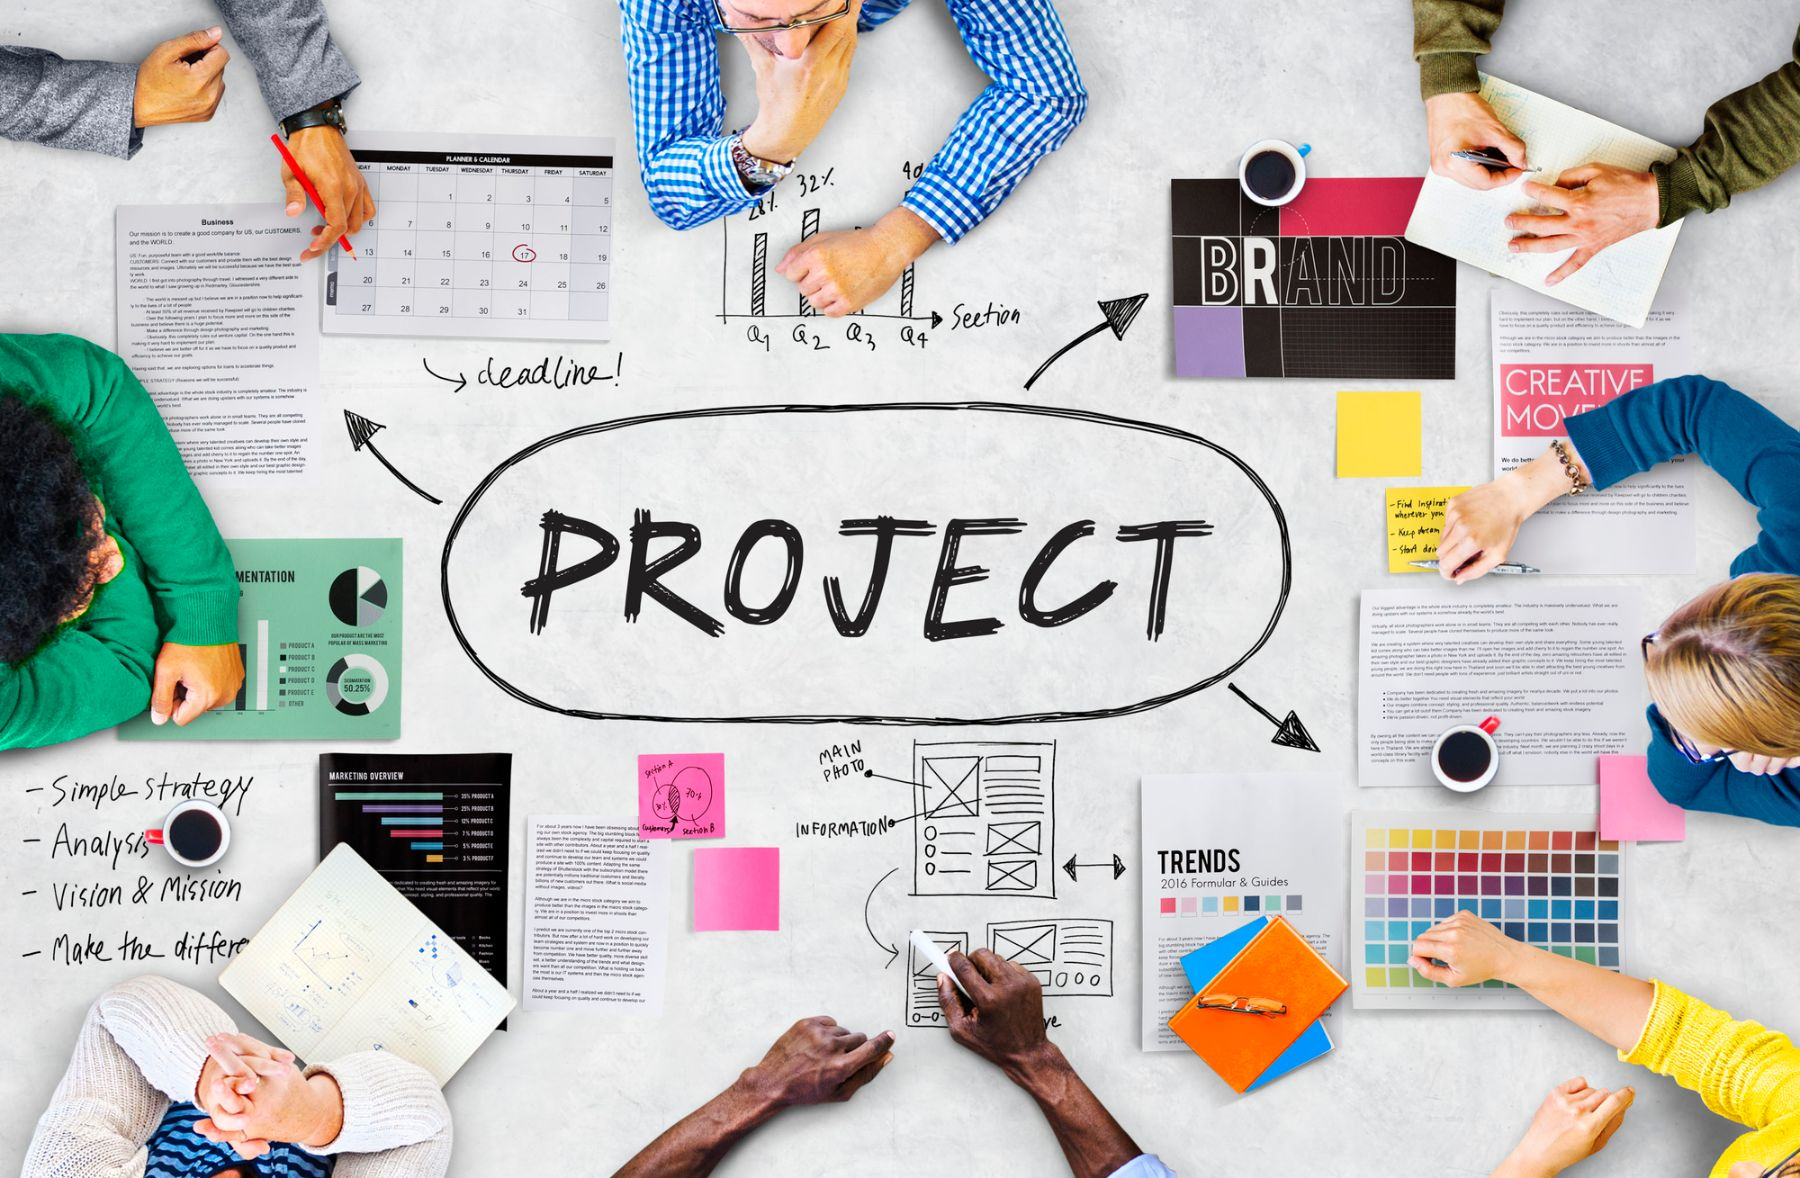 People discusing a project